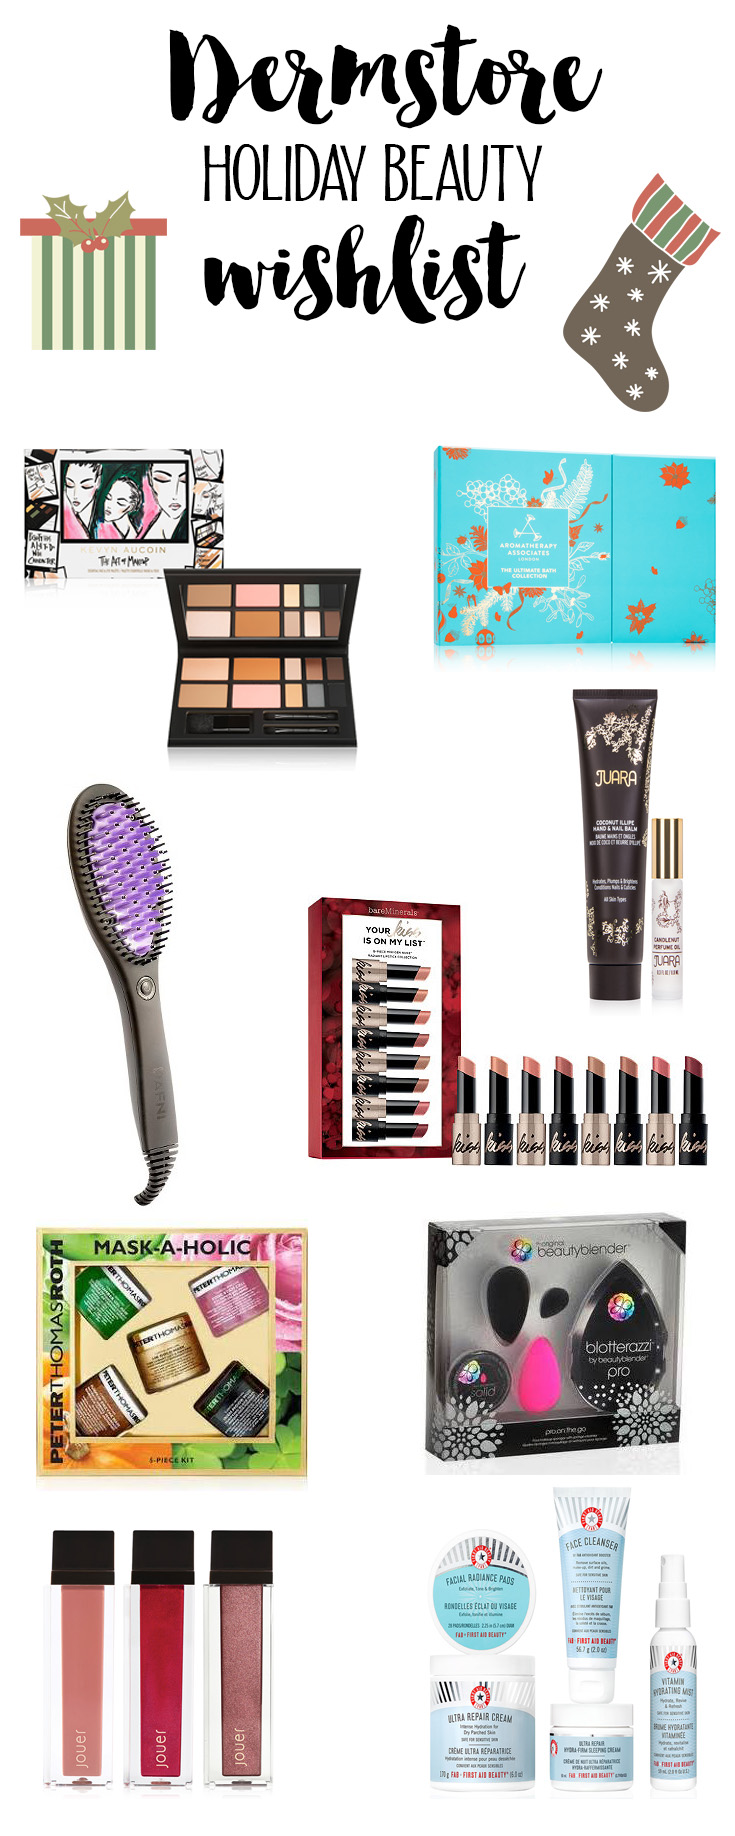 dermstore-holiday-beauty-wishlist